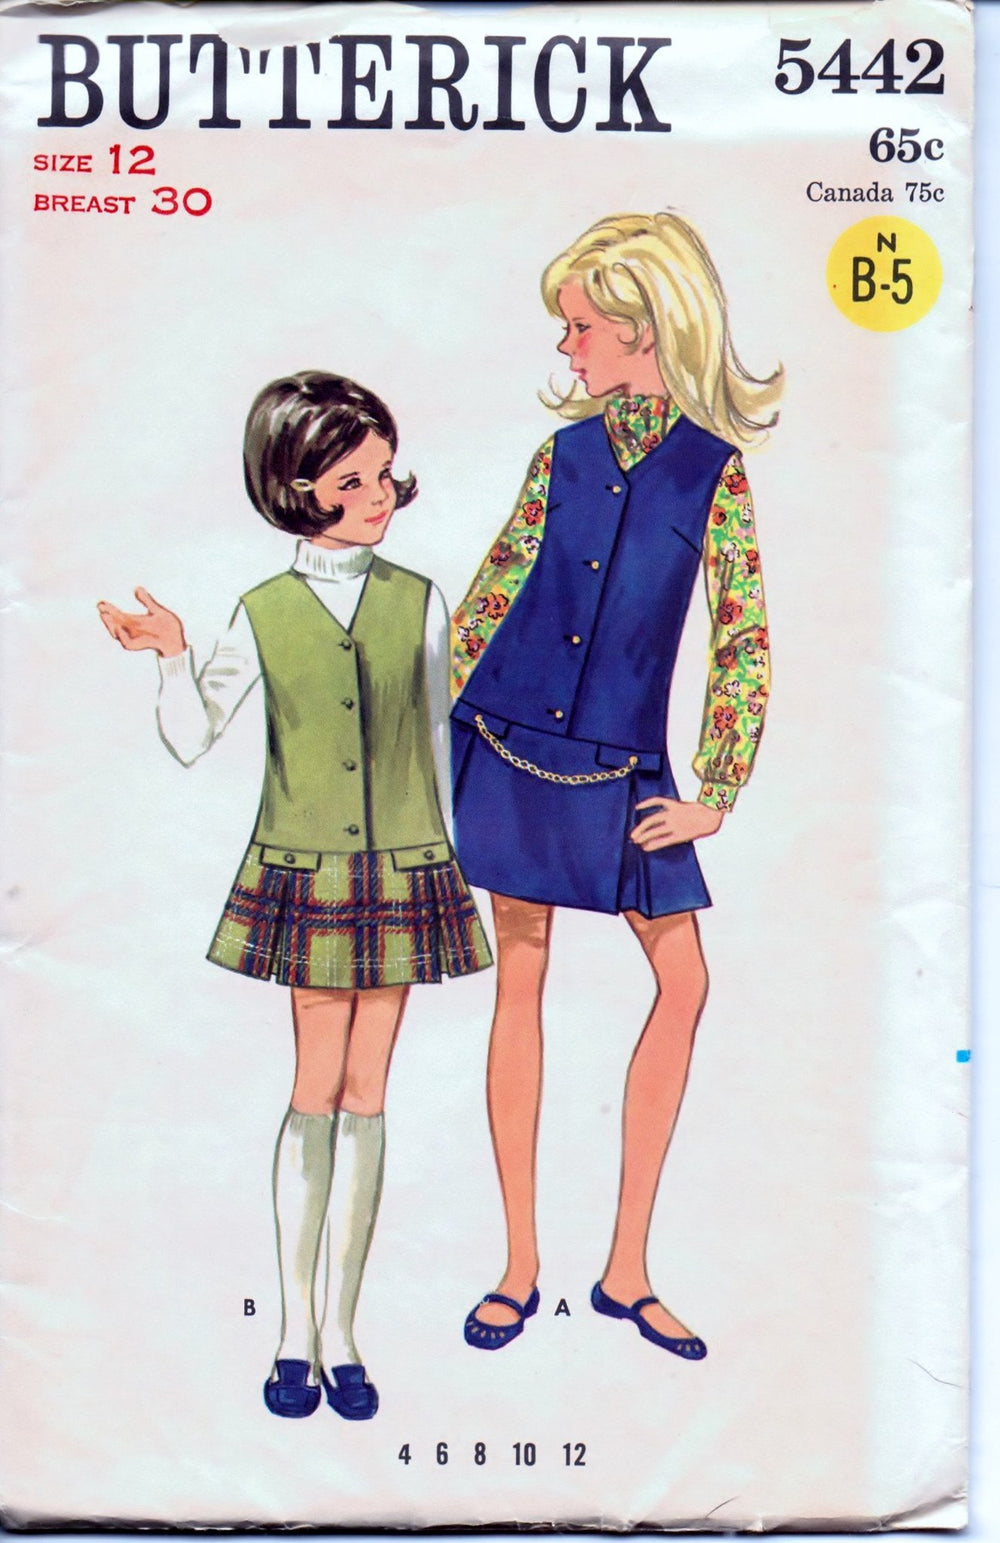 Butterick 5442 Young Girls Jumper Dress Vintage 1960's Sewing Pattern - VintageStitching - Vintage Sewing Patterns